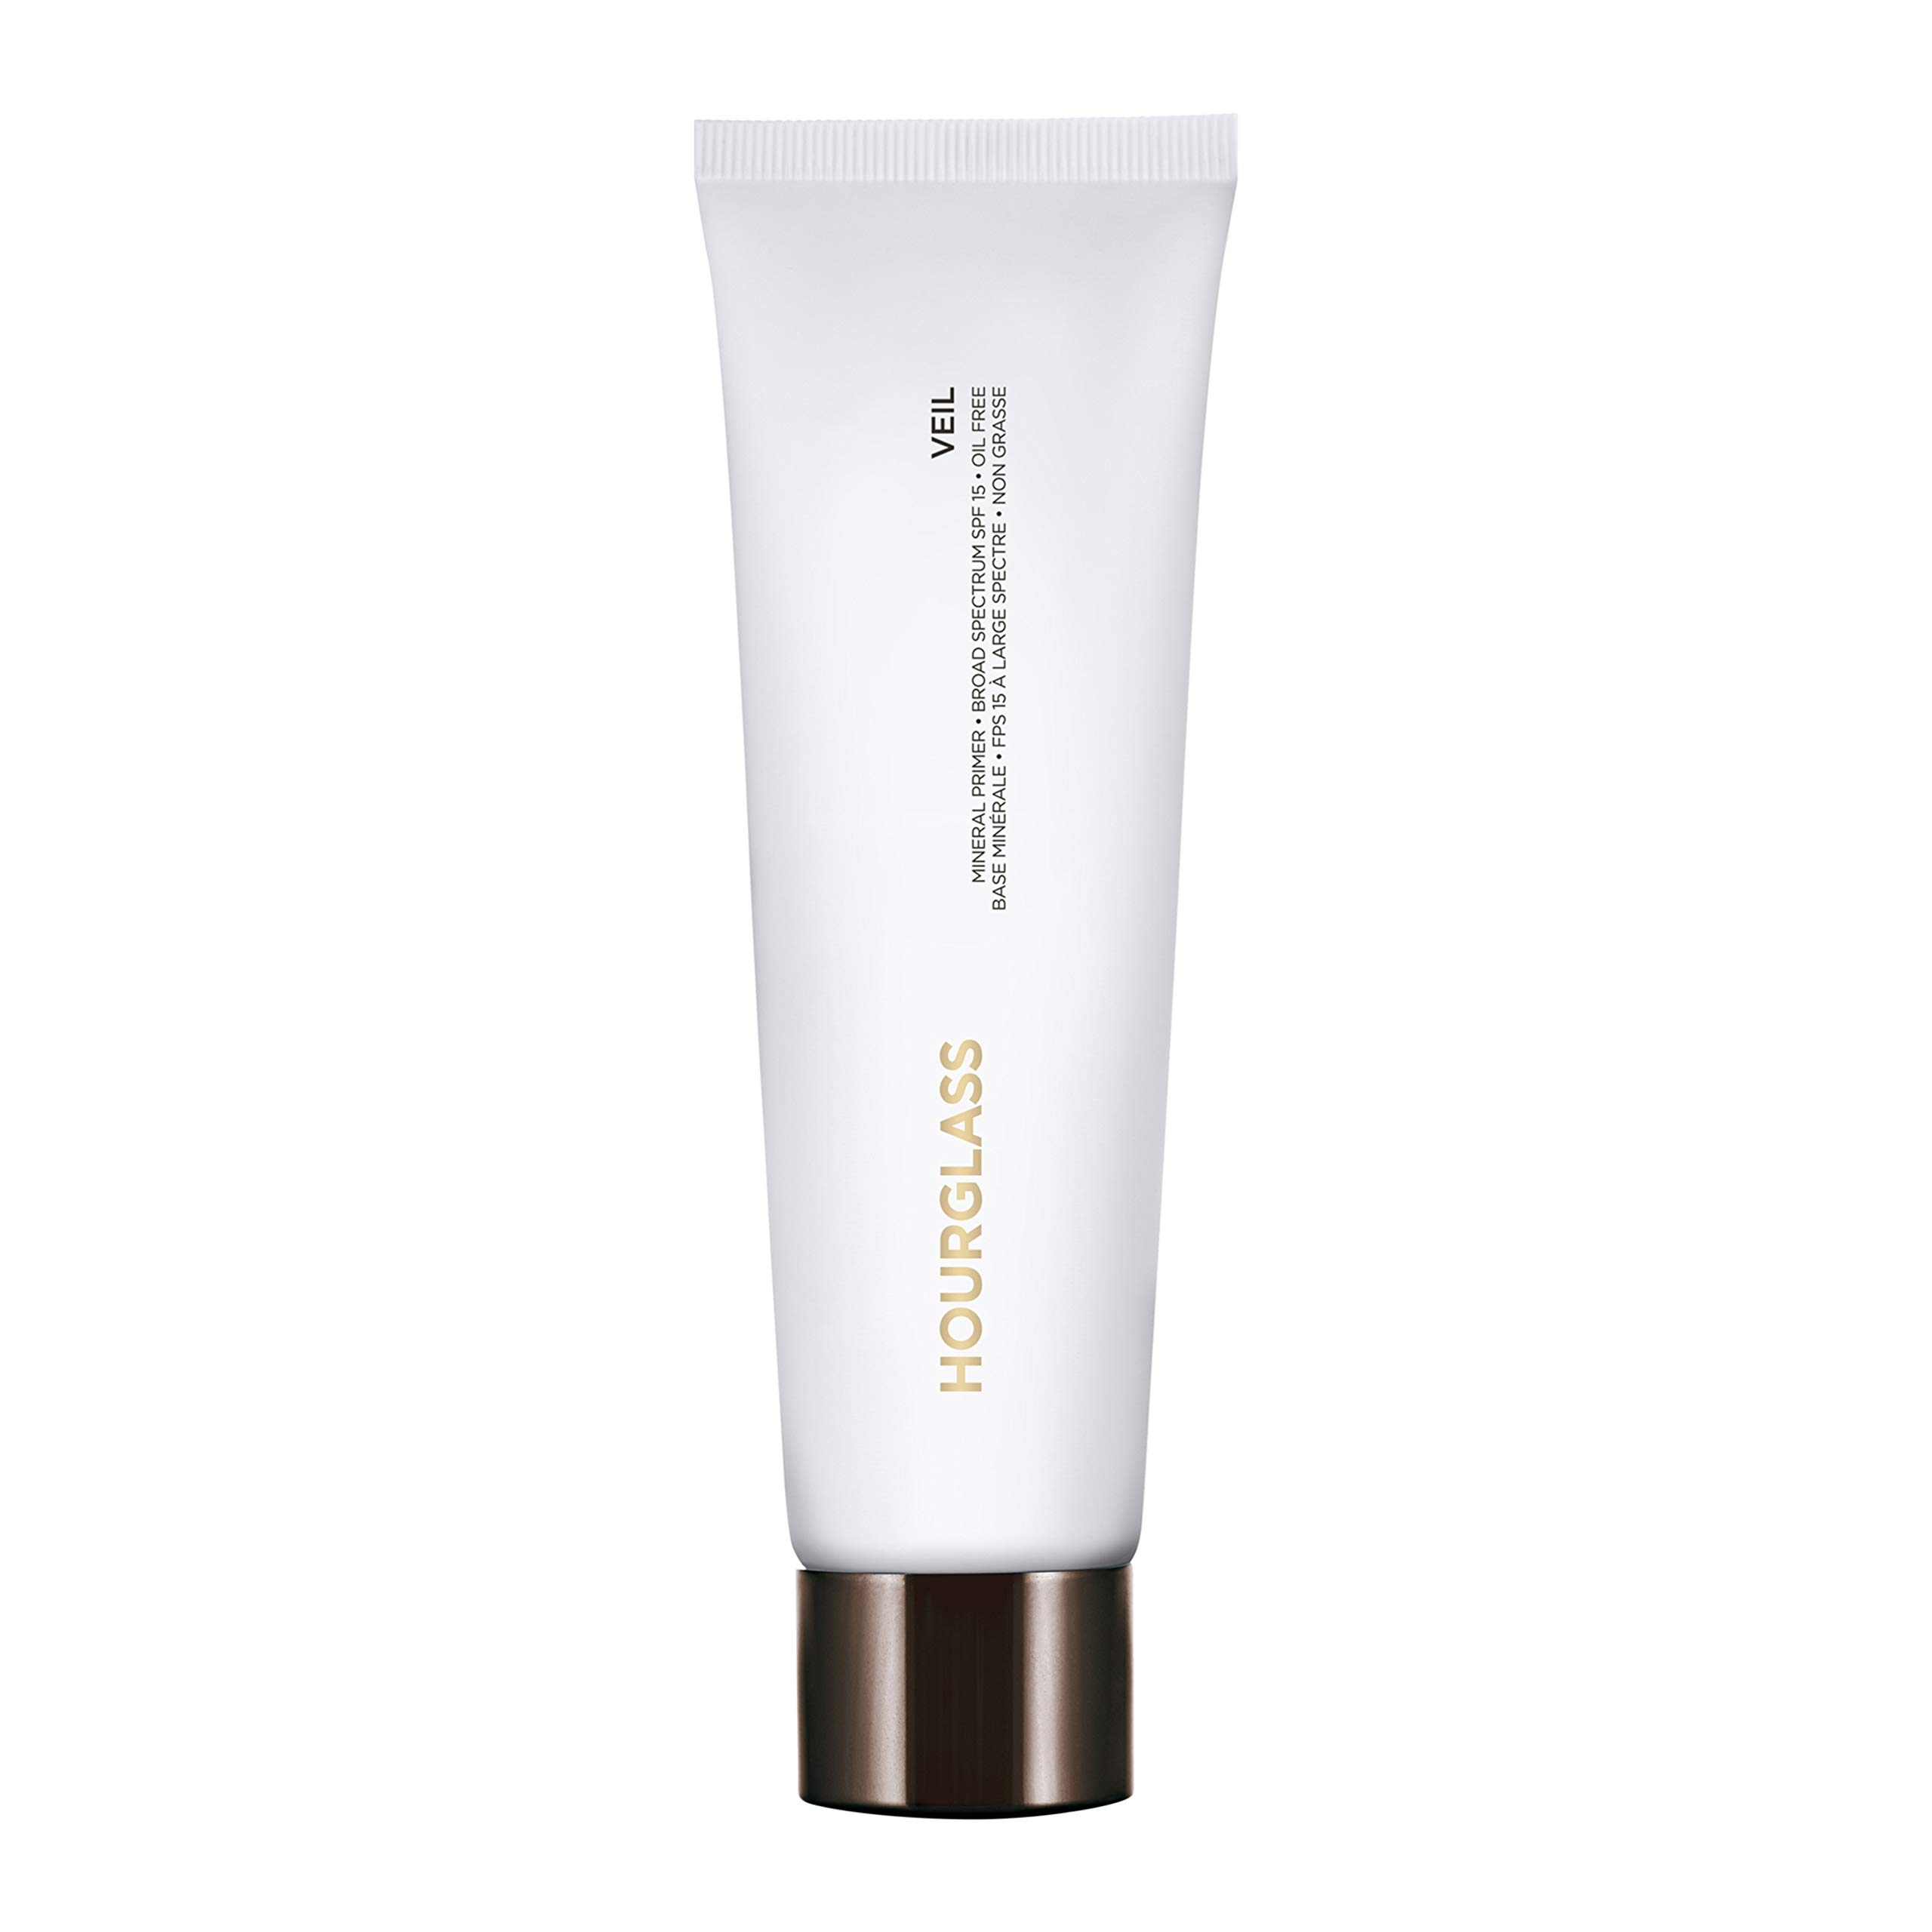 Hourglass Veil Mineral Primer 2 oz. Jumbo Size. by Unknown (Image #1)